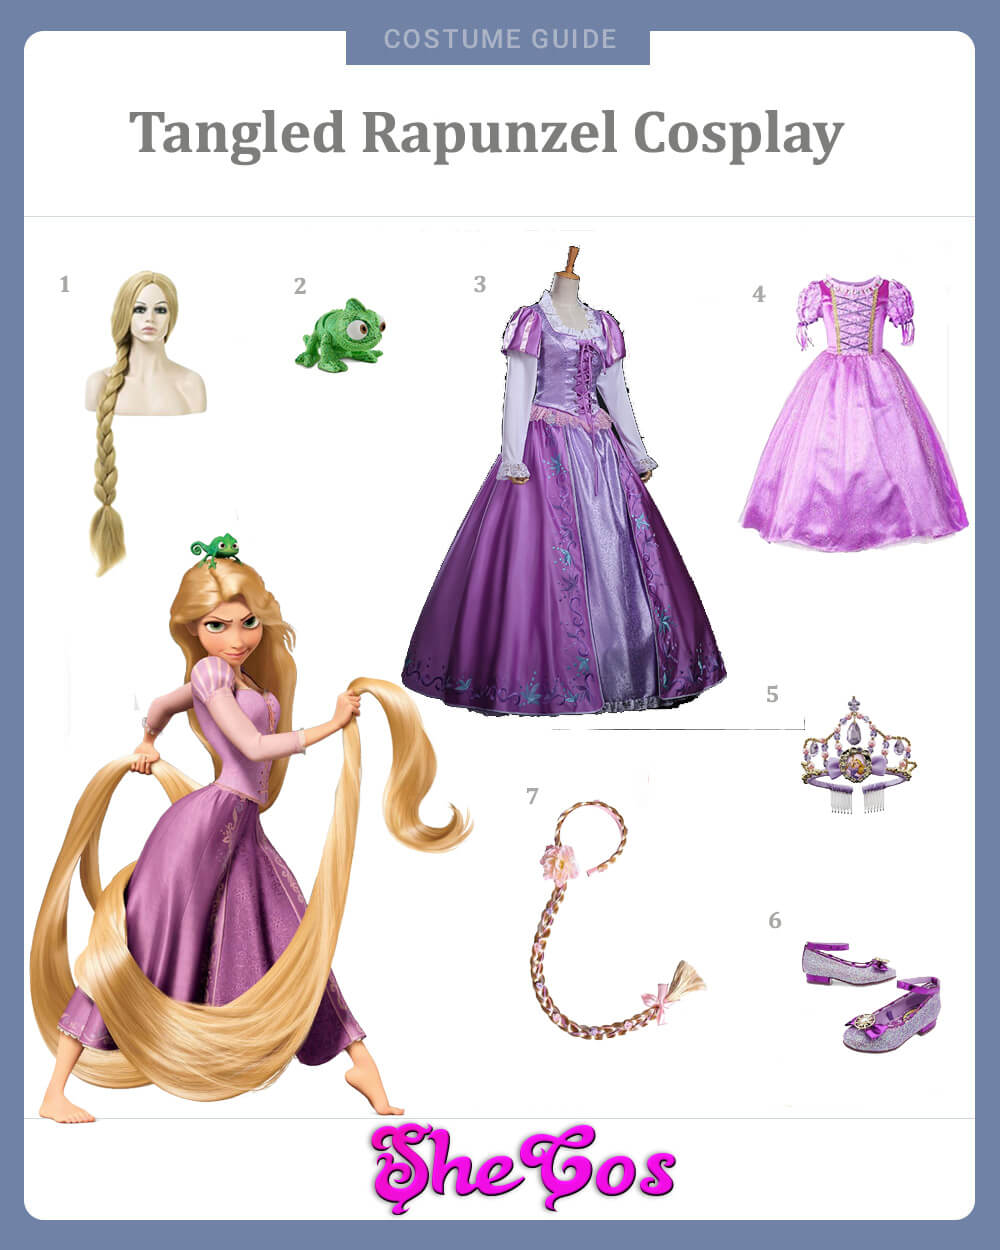 Tangled Rapunzel Cosplay Guide